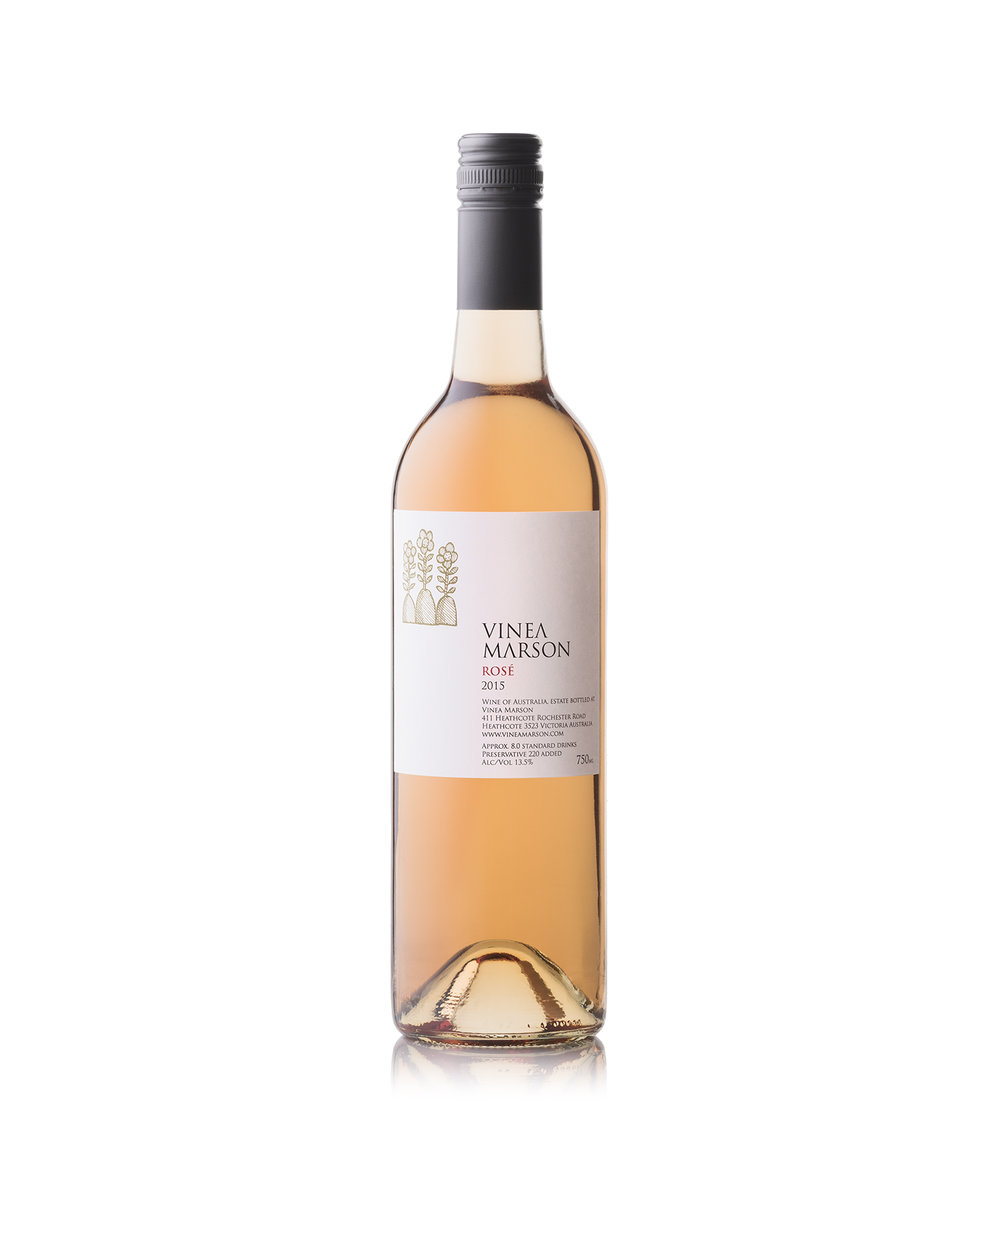 2014 ROSÉ  - 13.5% alc/vol(75% Sangiovese and 25% Nebbiolo)The pale onion skin colour of this Rosé with slight pink tinges gives a hint as to the savoury European style of this beautiful food friendly wine. On the nose, notes of strawberries and cream are evident as well as enticing savoury herbal characters. This wine exhibits a savoury palate of dried herbs from the Nebbiolo which gives way to flavours of ripe strawberries and cherries from the Sangiovese. A hint of almond kernel is evident on this wine's long finish.The mix of these two varieties allows for the dynamic interplay between Sangiovese and Nebbiolo – a merging of sweet fruit and savoury characters provide this wine with balance and complexity.